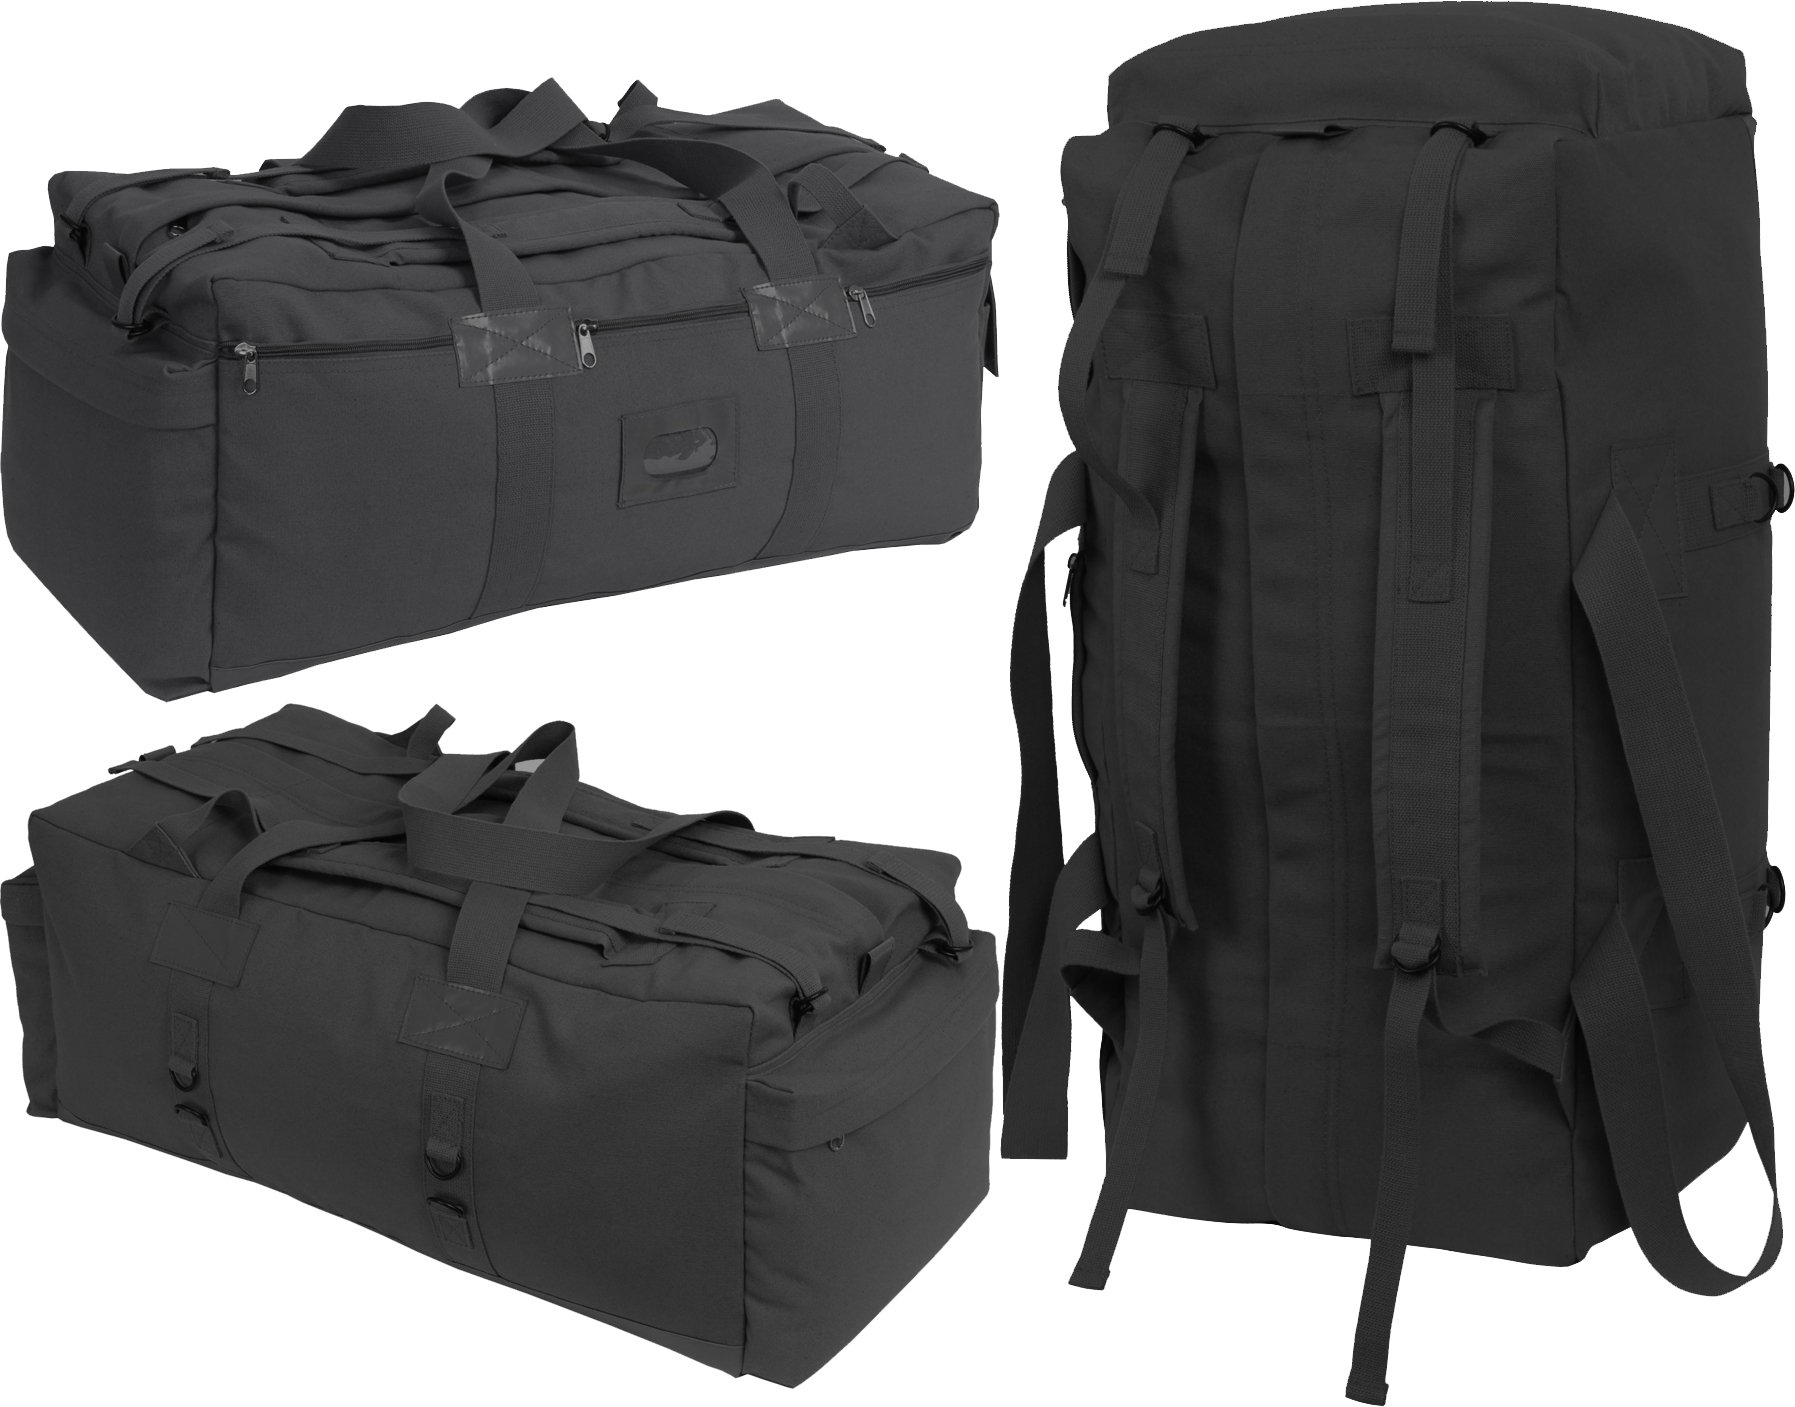 Black Israeli Military Mossad Tactical Carry Duffle Bag with Backpack Straps